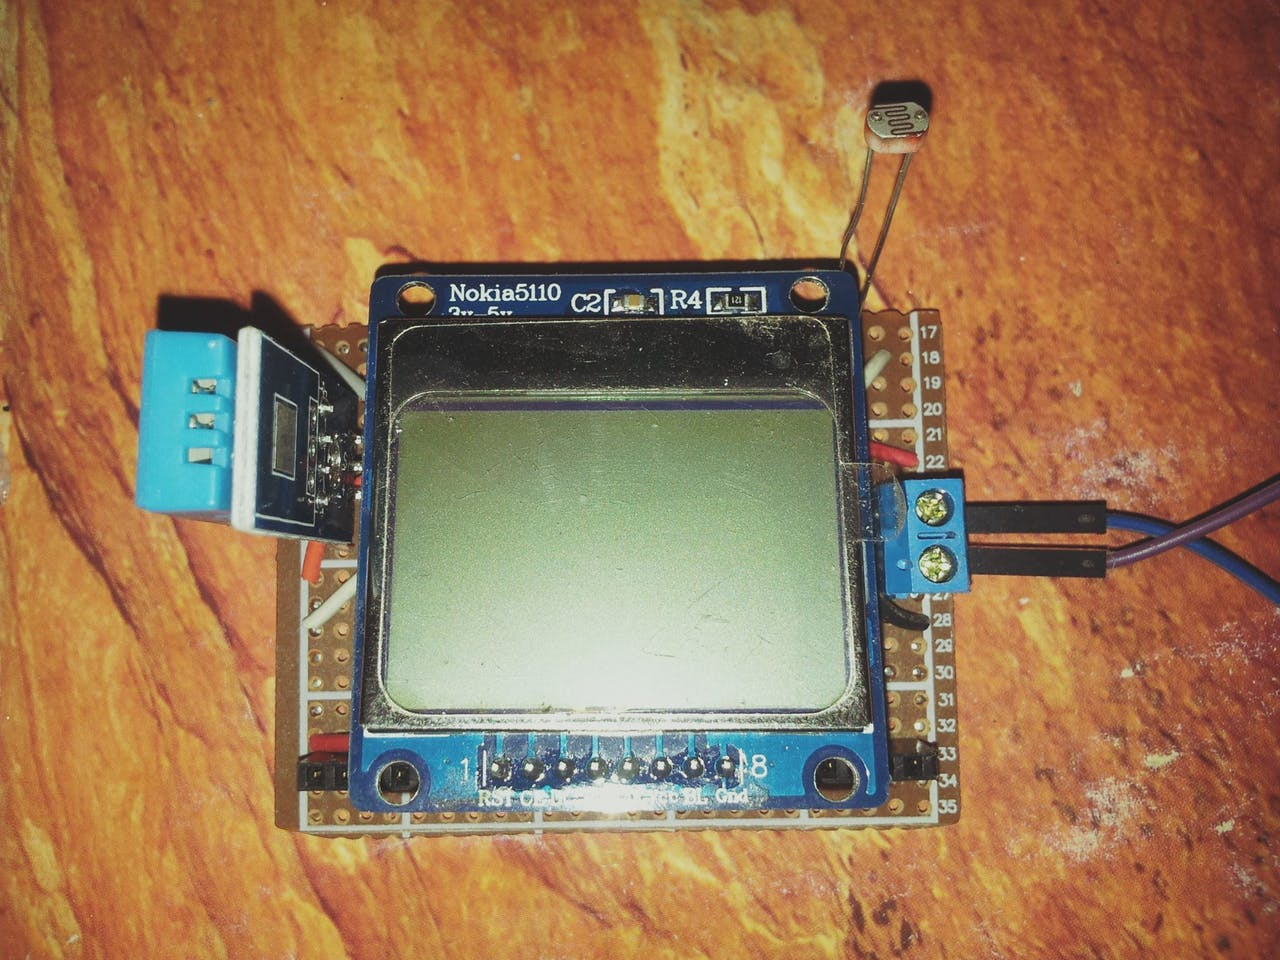 Personal Weather Station Arduino Project Hub Pwm Charge Controller V2 Veroboard V3